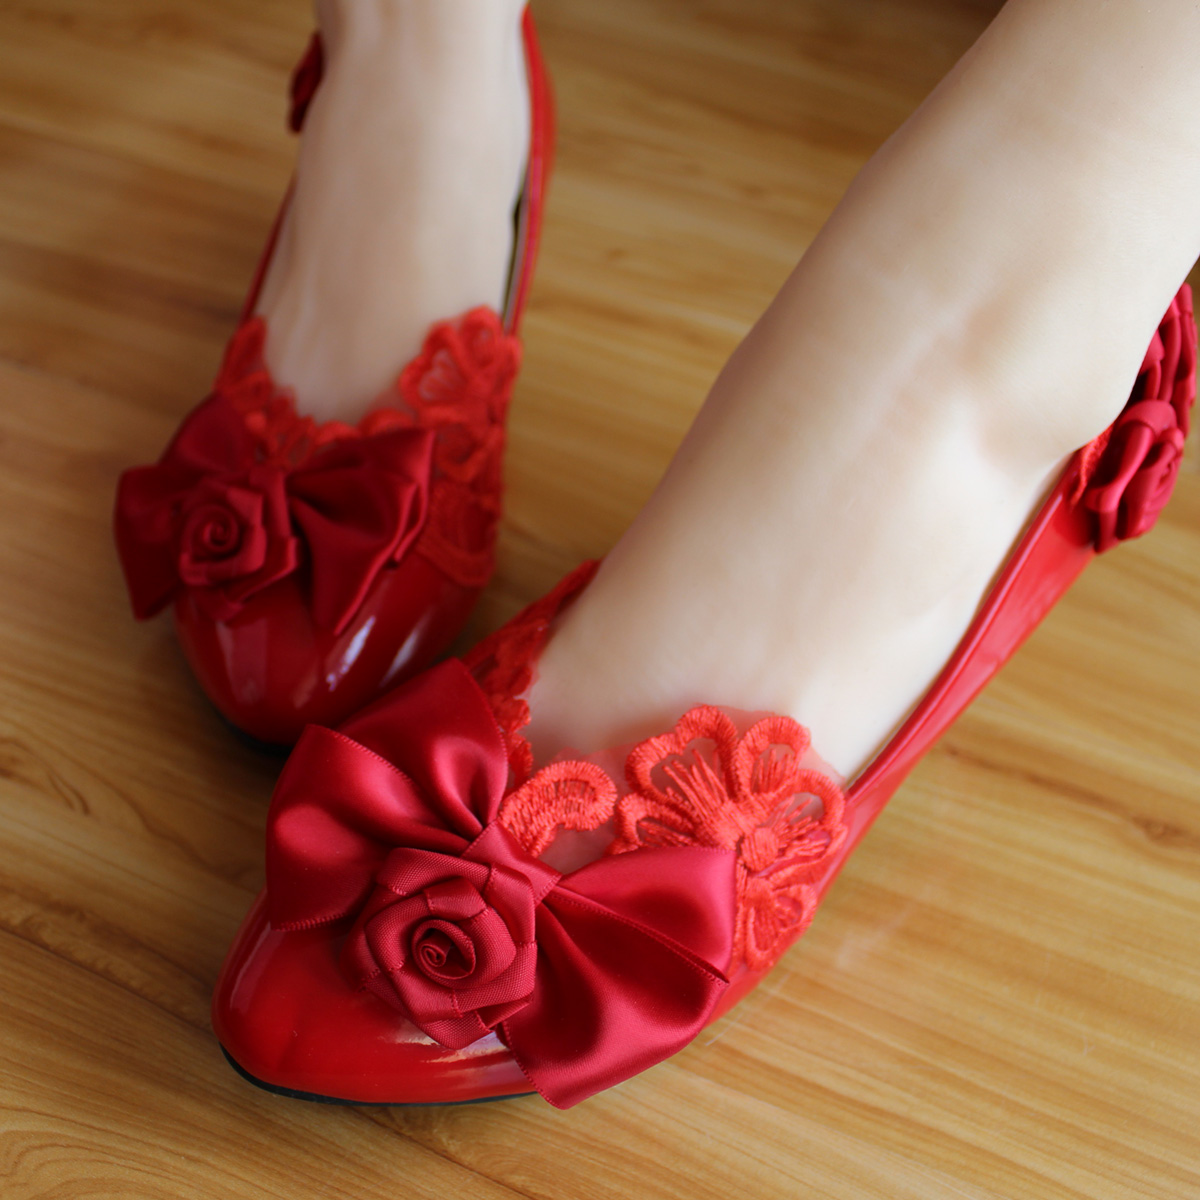 b19cf0ccd19 Red handmade bridal shoes flat heel rose bow wedding shoes embroidered lace flat  shoes women s shoes